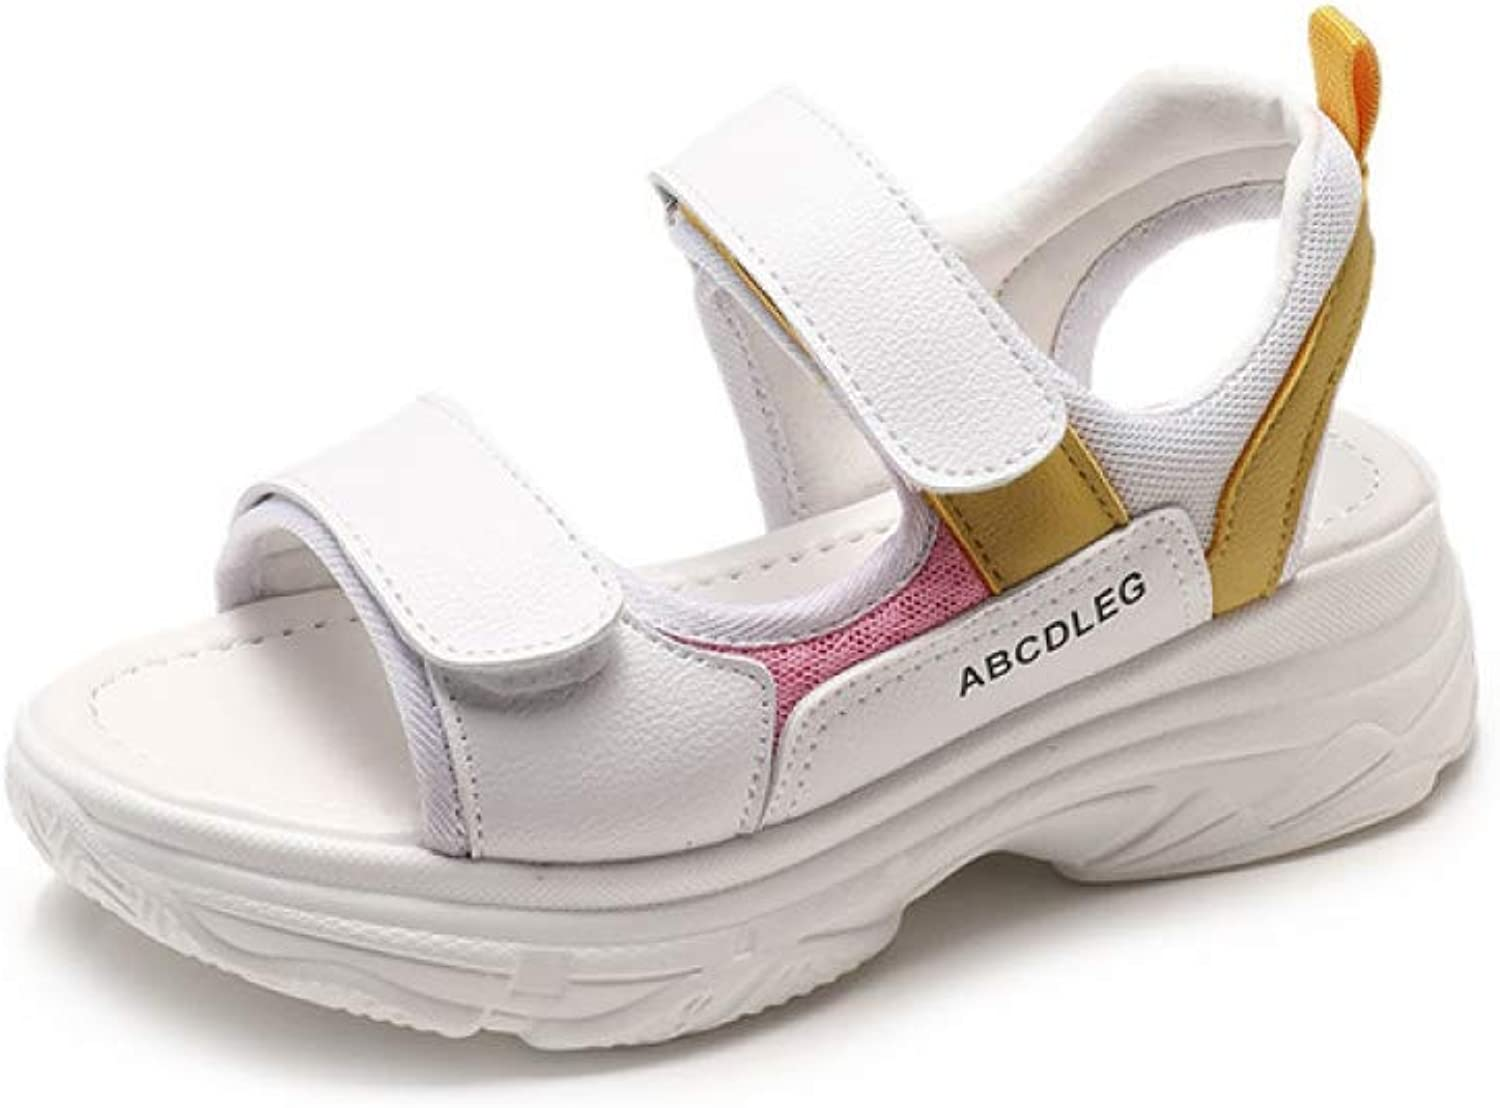 MEIZOKEN Women Fashion Platform Chunky Sandals Comfort Non-Slip Casual Sport Sandal shoes